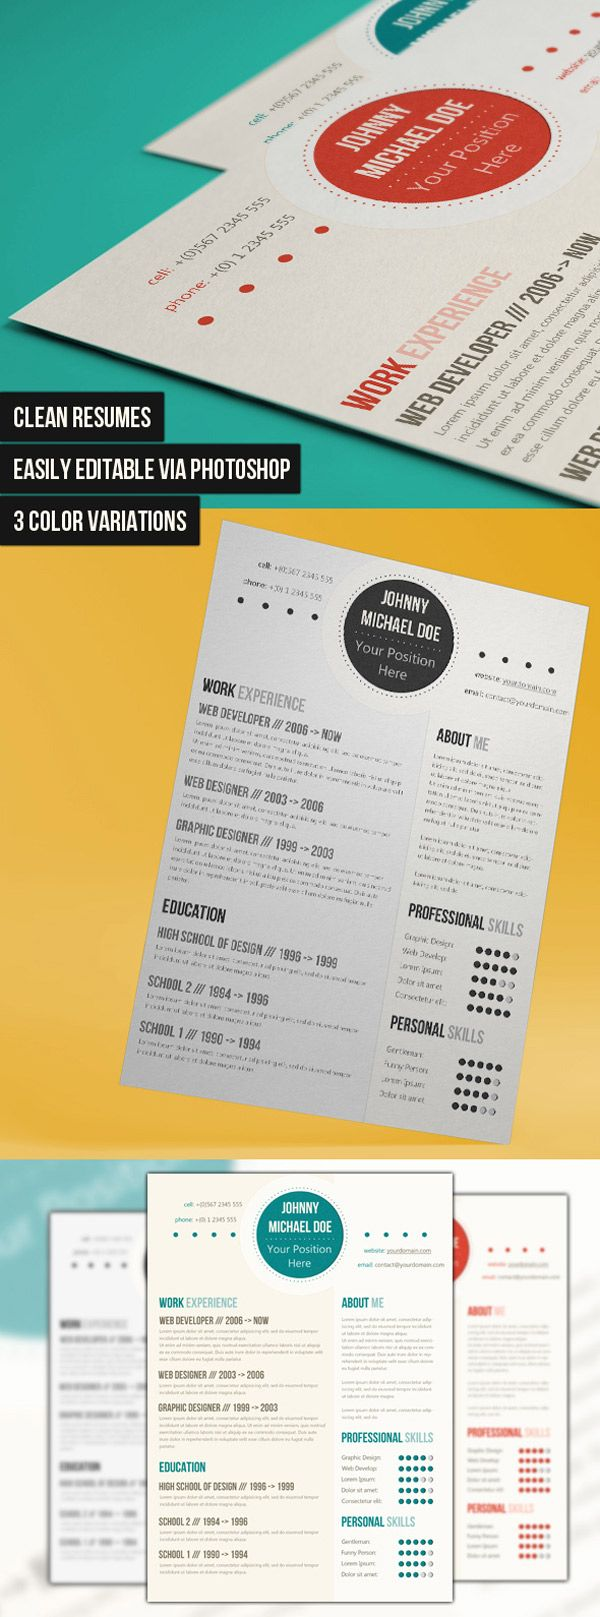 25 awesome cv templates and examples 4 25 creative cv